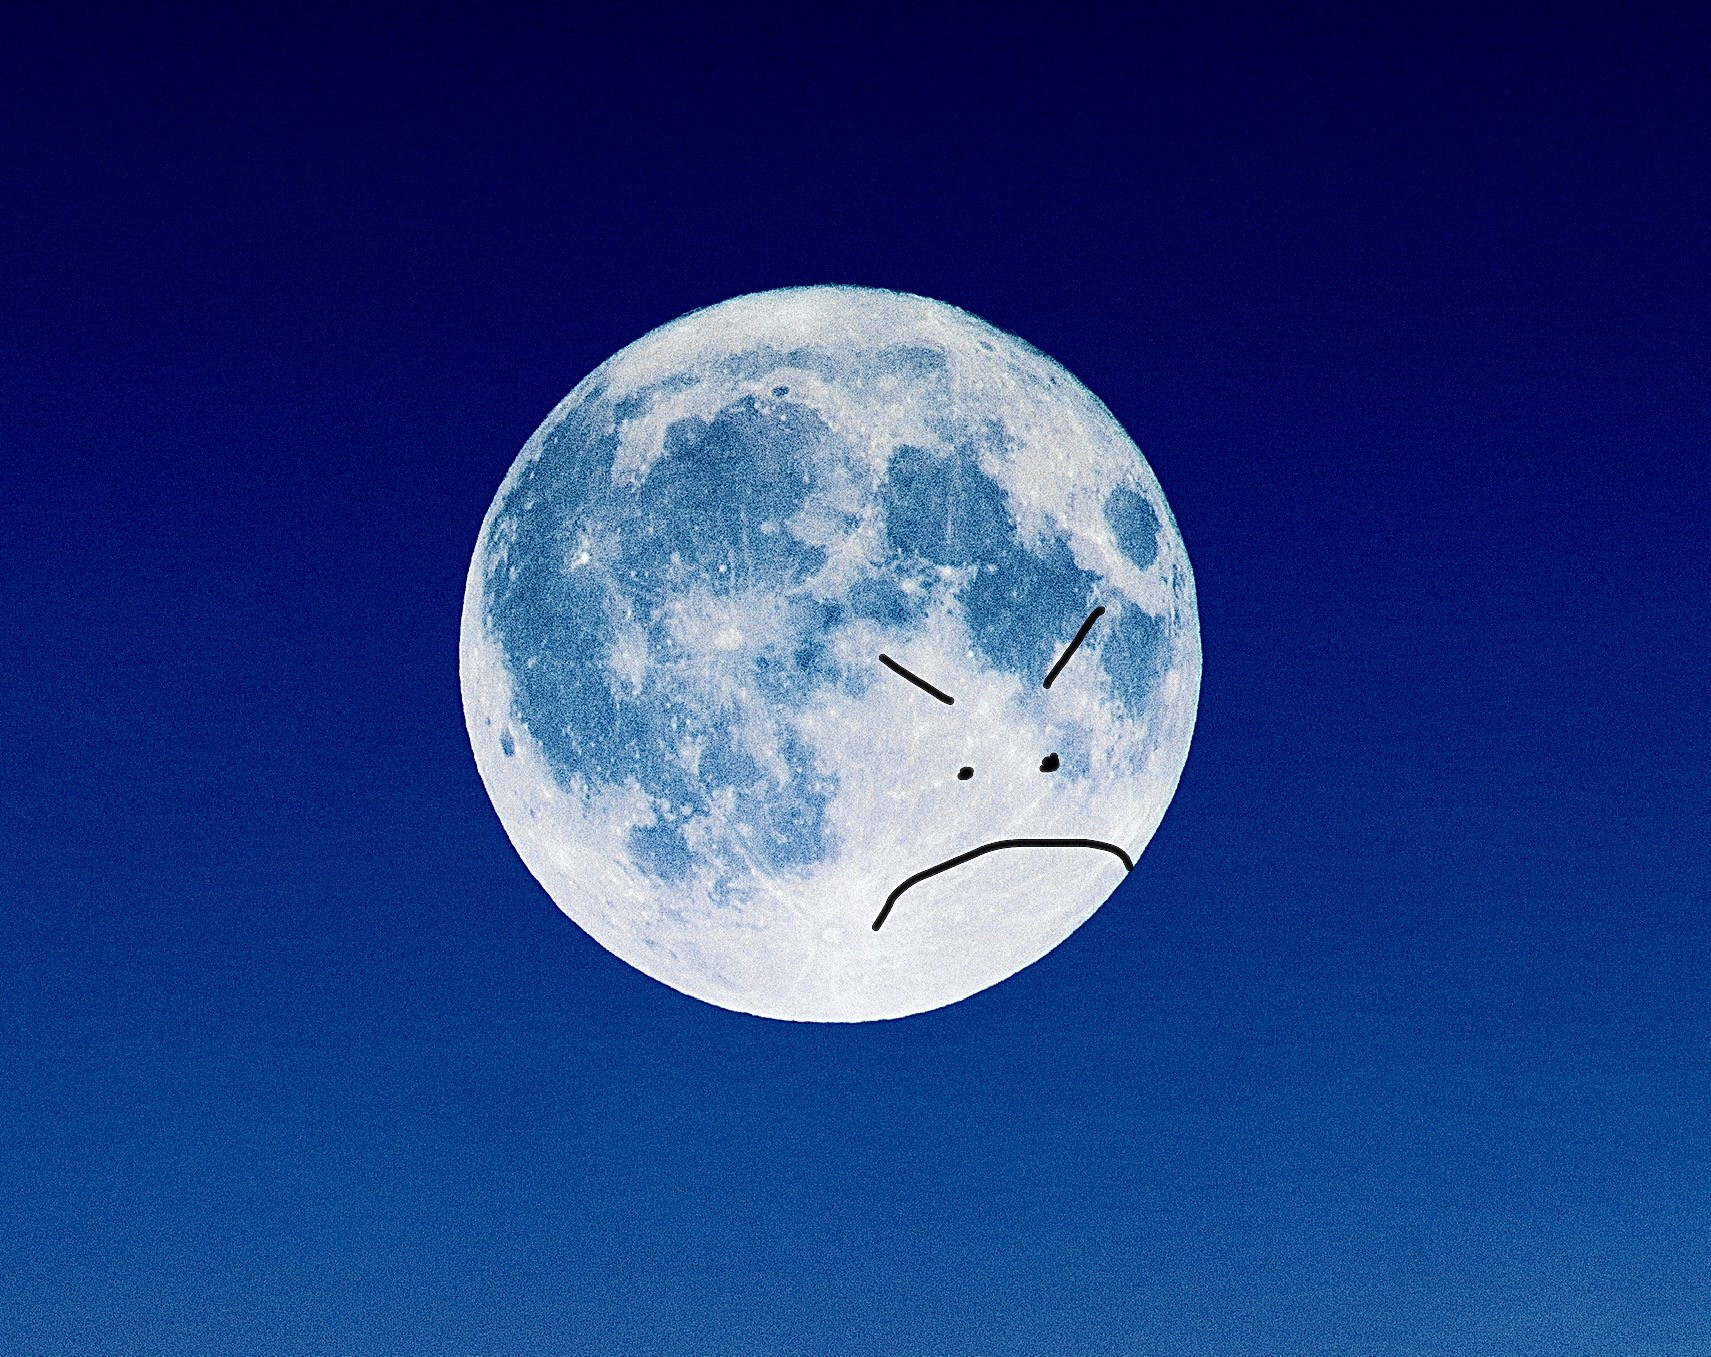 The moon is sad because it was hexed by TikTok witches.